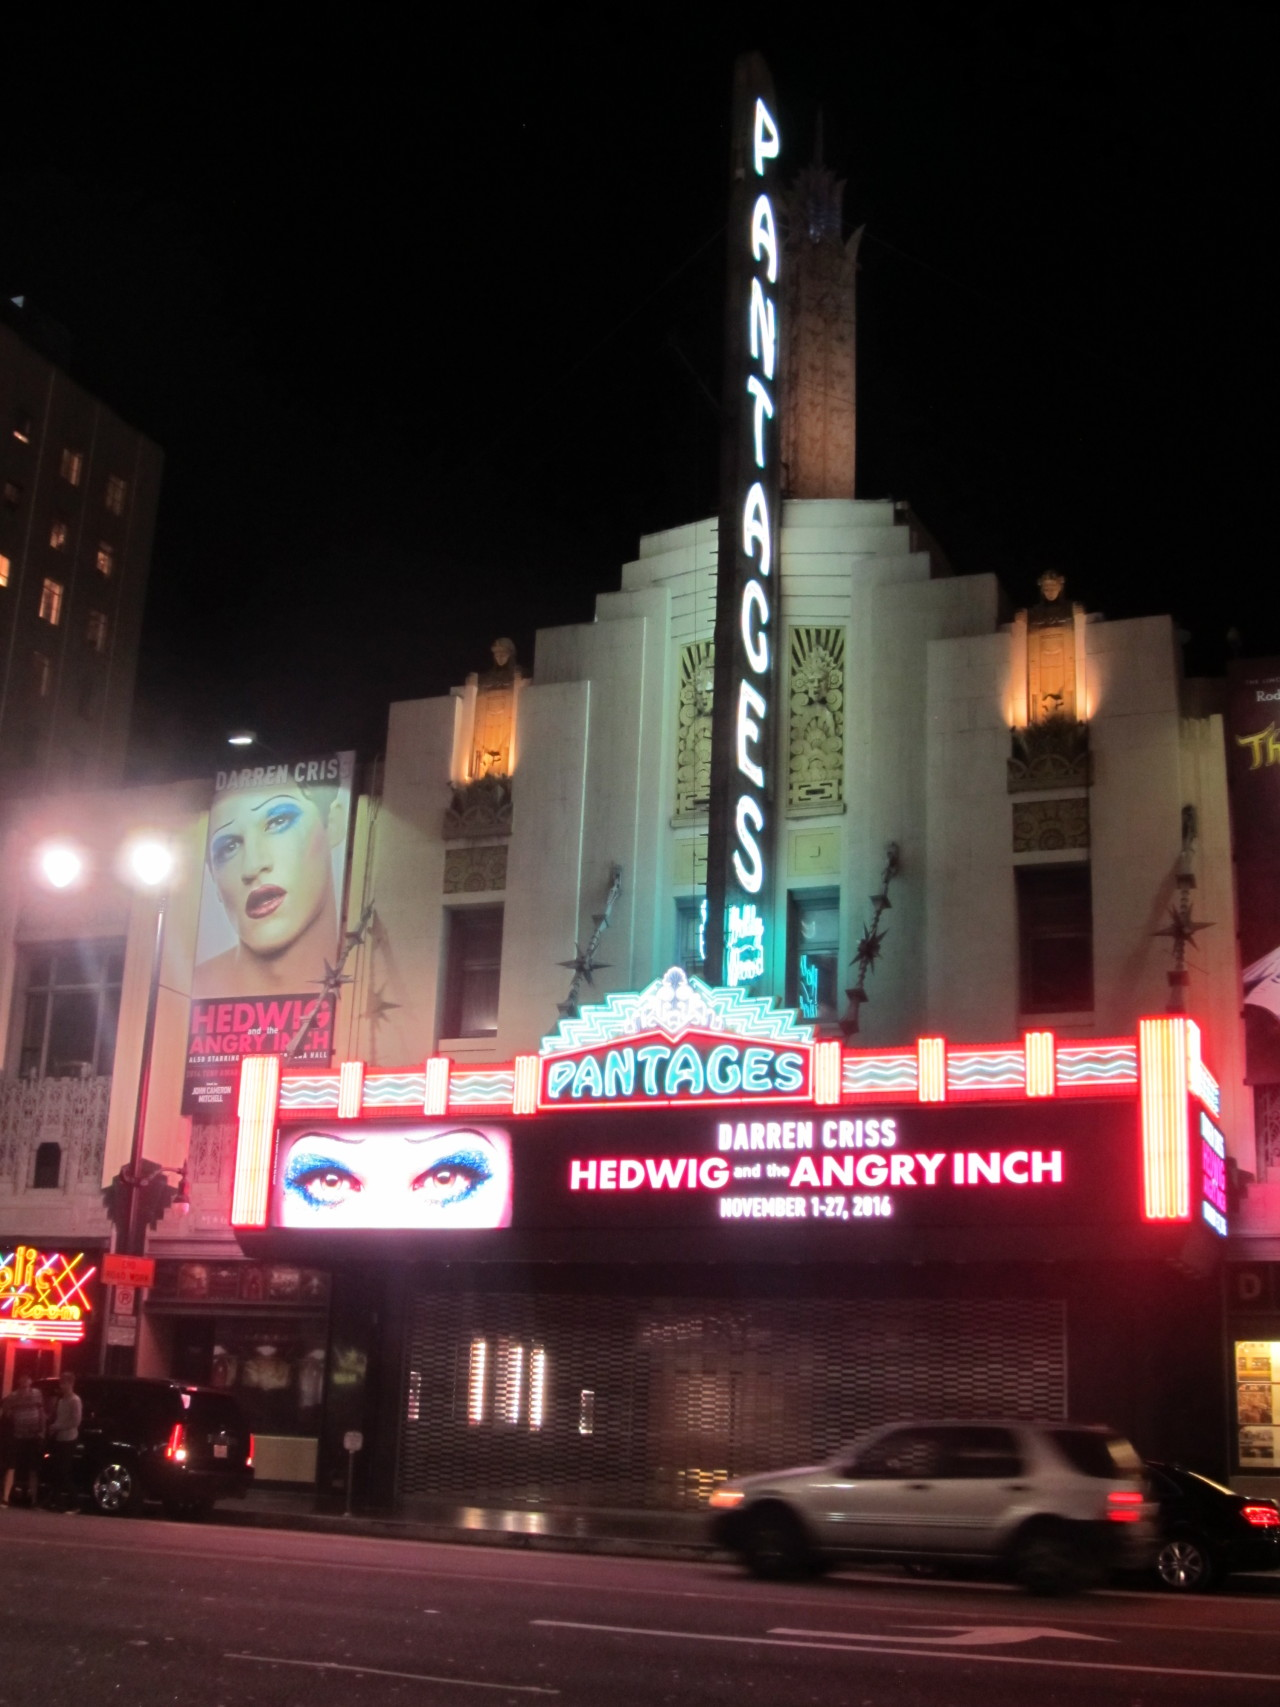 hedwigtour - The Hedwig and the Angry Inch Tour in SF and L.A. (Promotion, Pre-Performances & Miscellaneous Information) - Page 2 Tumblr_obs55unIDR1qmj3nao1_1280